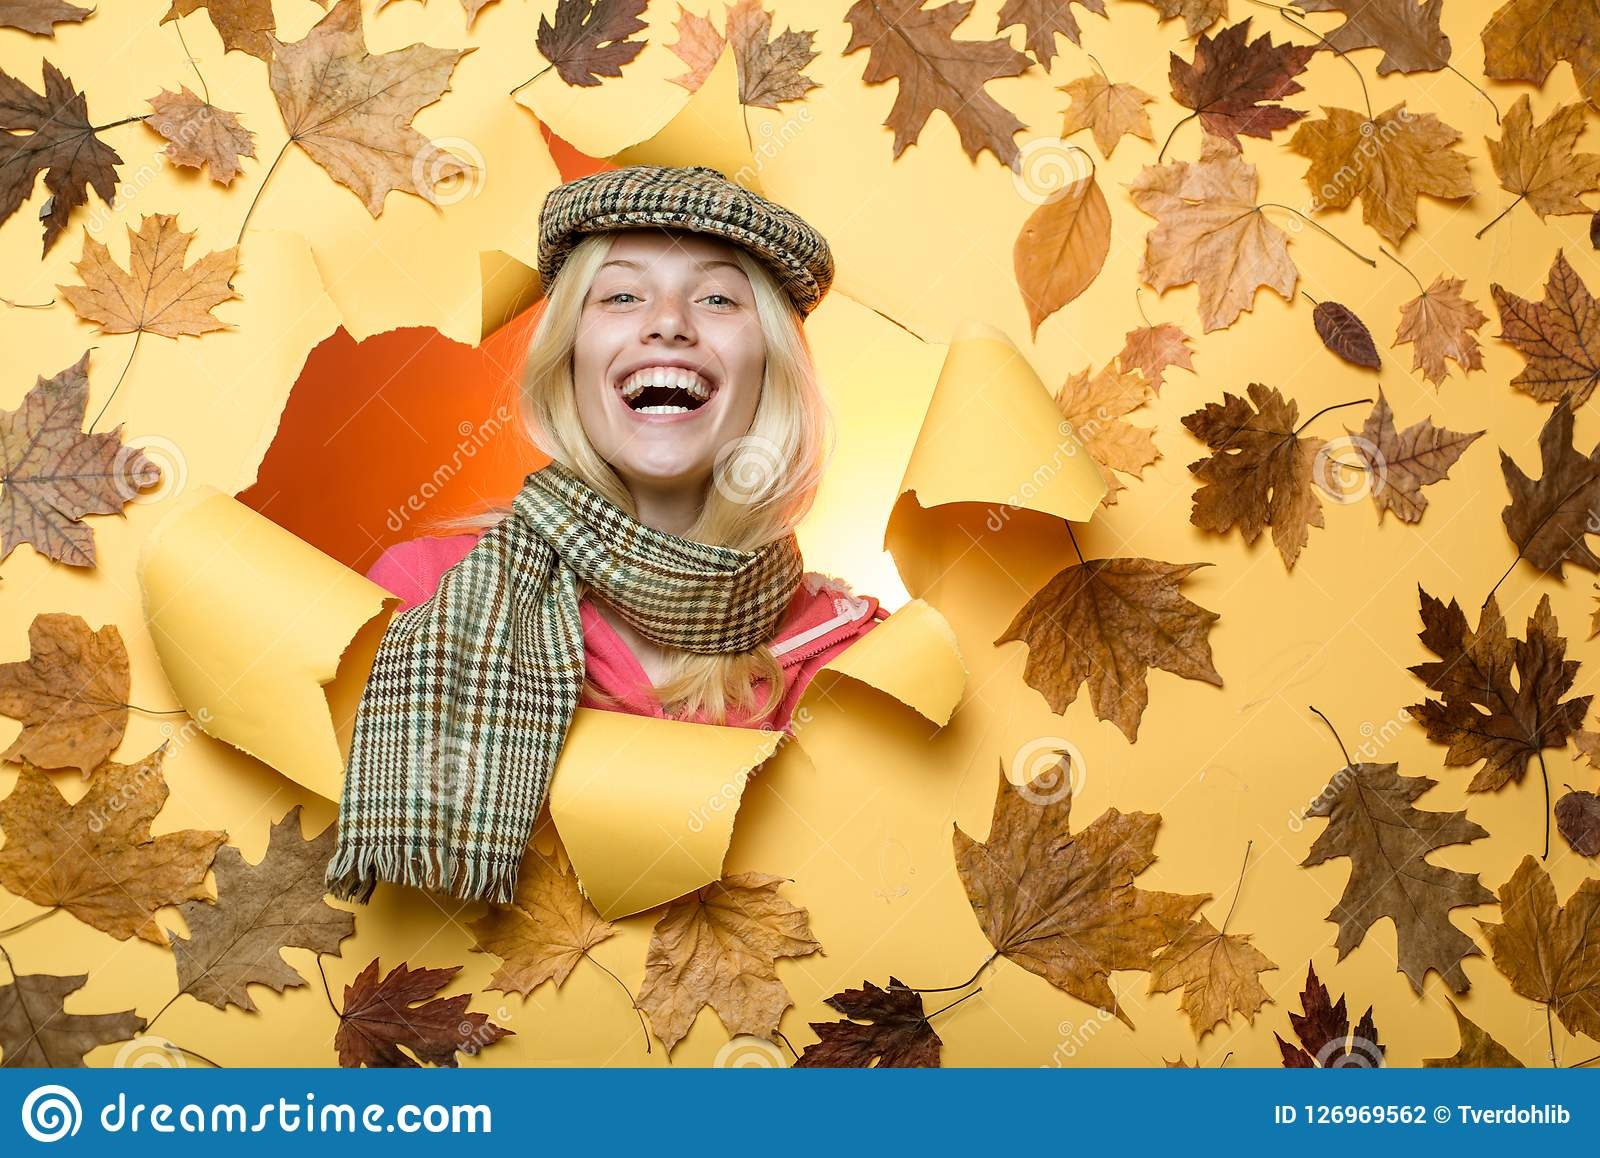 f8f2968ac0 Girl wearing in autumn clothes on autumn day. Having fun. Happy young woman  are